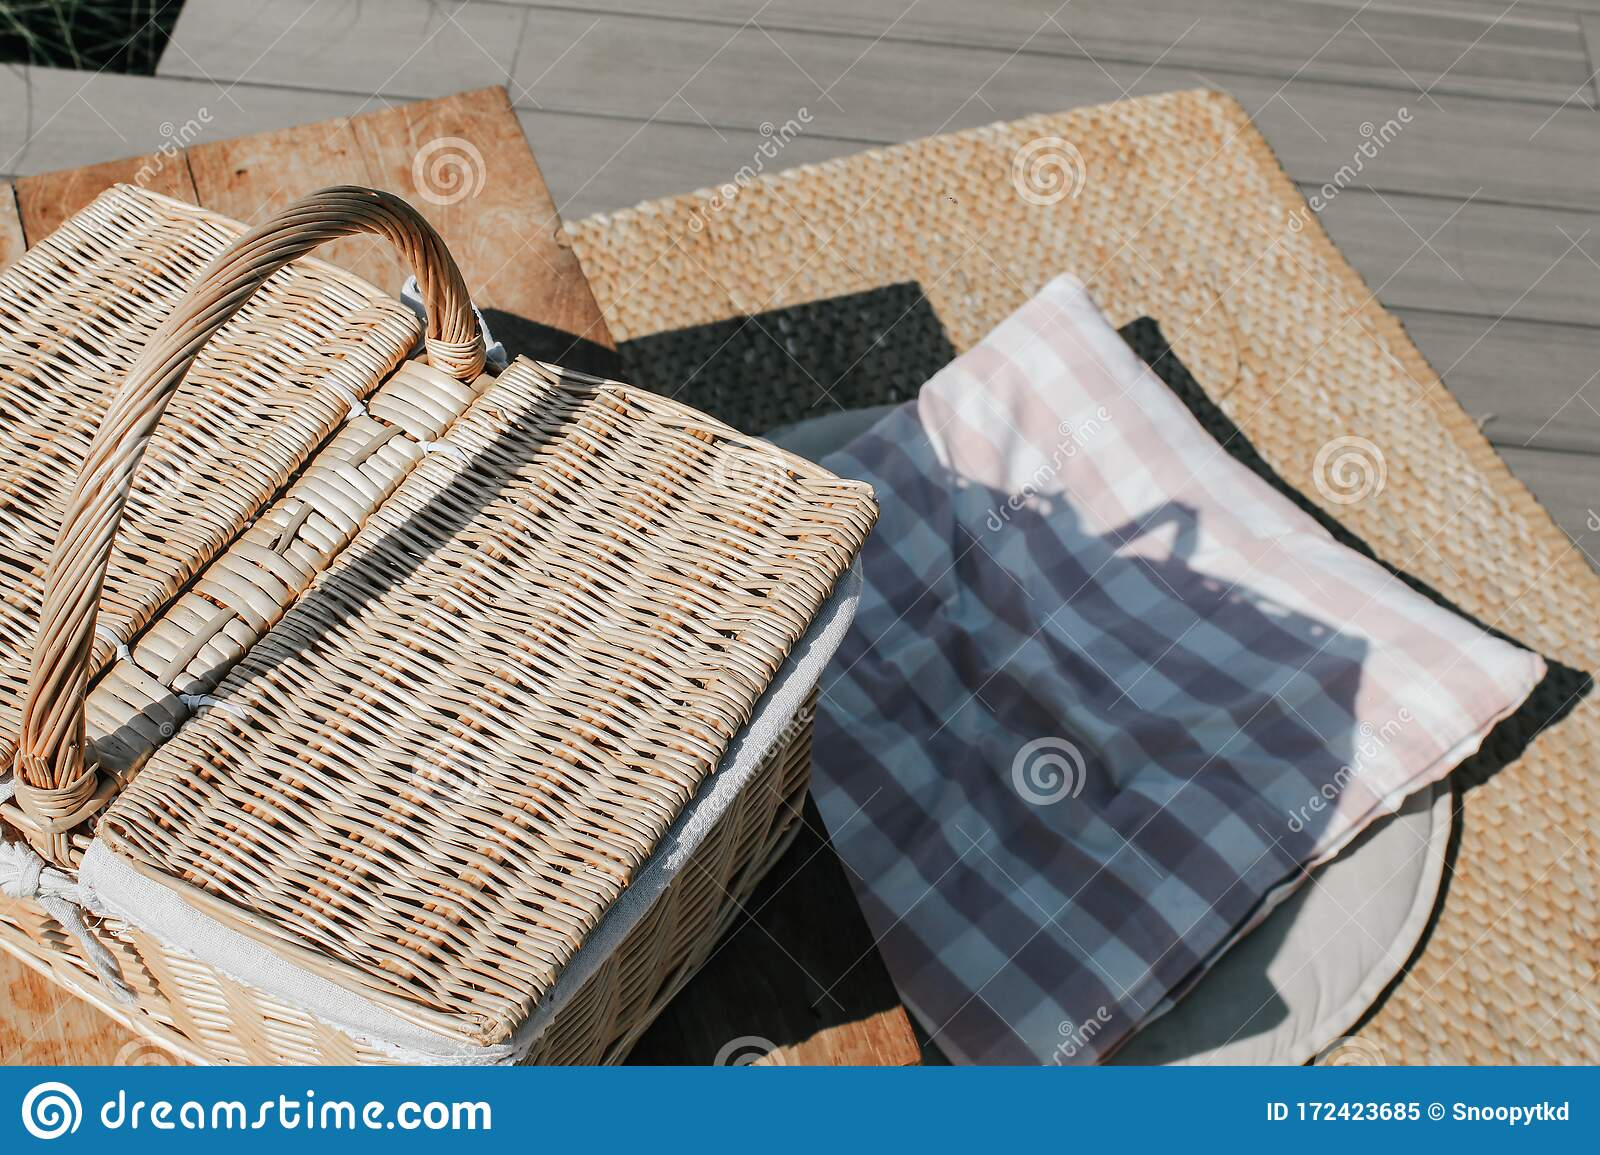 Empty Table With Wicker Basket Picnic Table Blanket And Basket In The Grass Background Stock Image Image Of Furniture Clothes 172423685